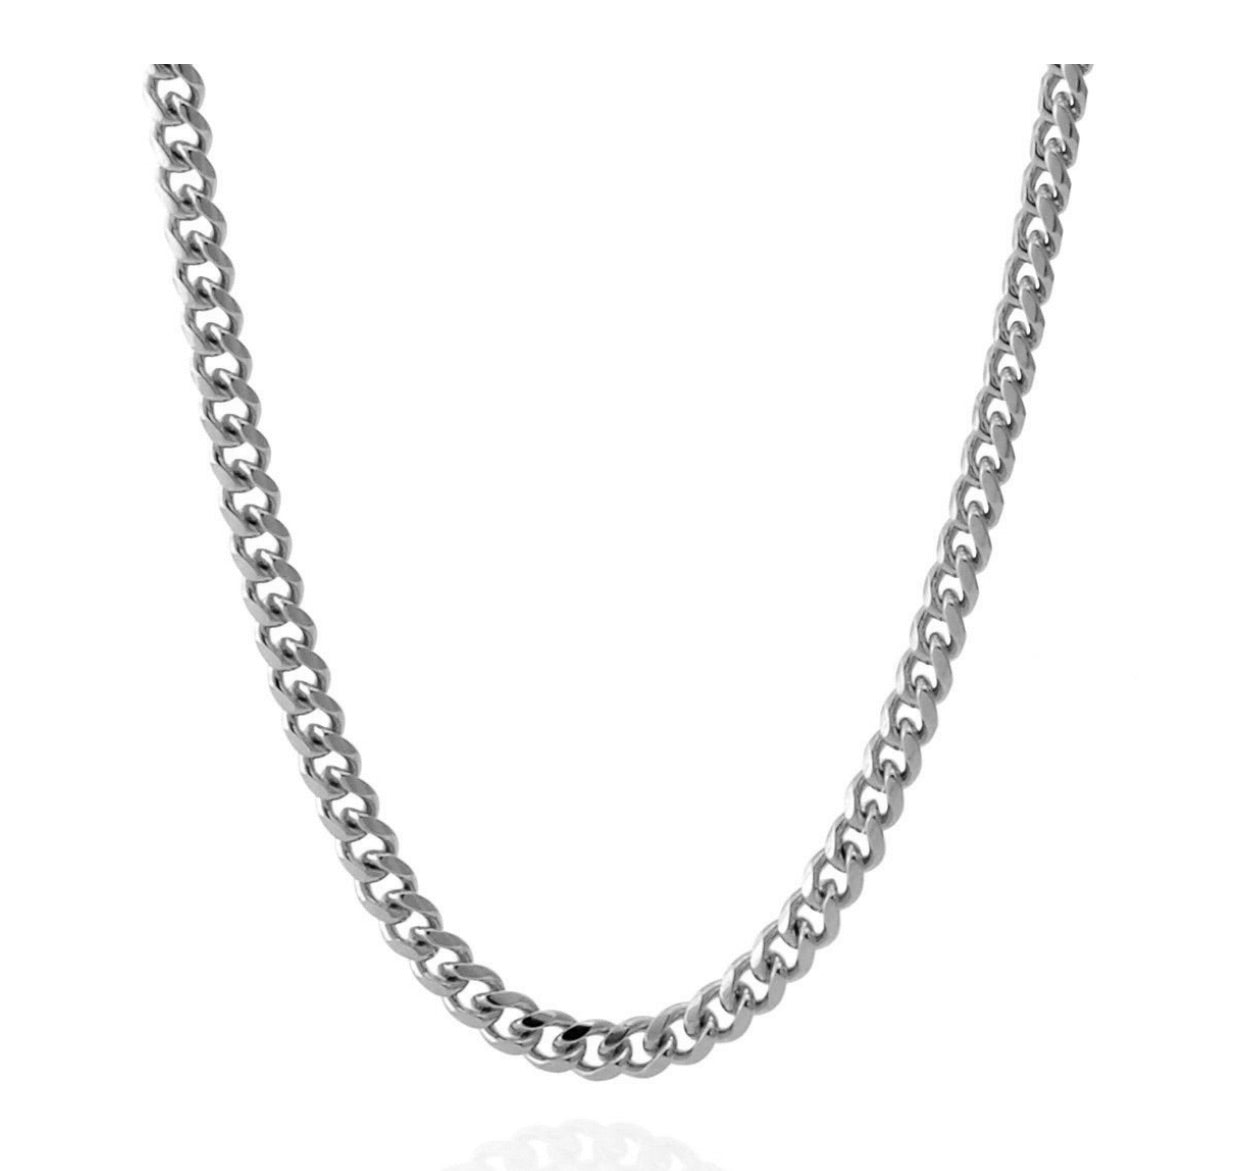 14K 5mm White Gold Miami Cuban Curb Chain - A&M